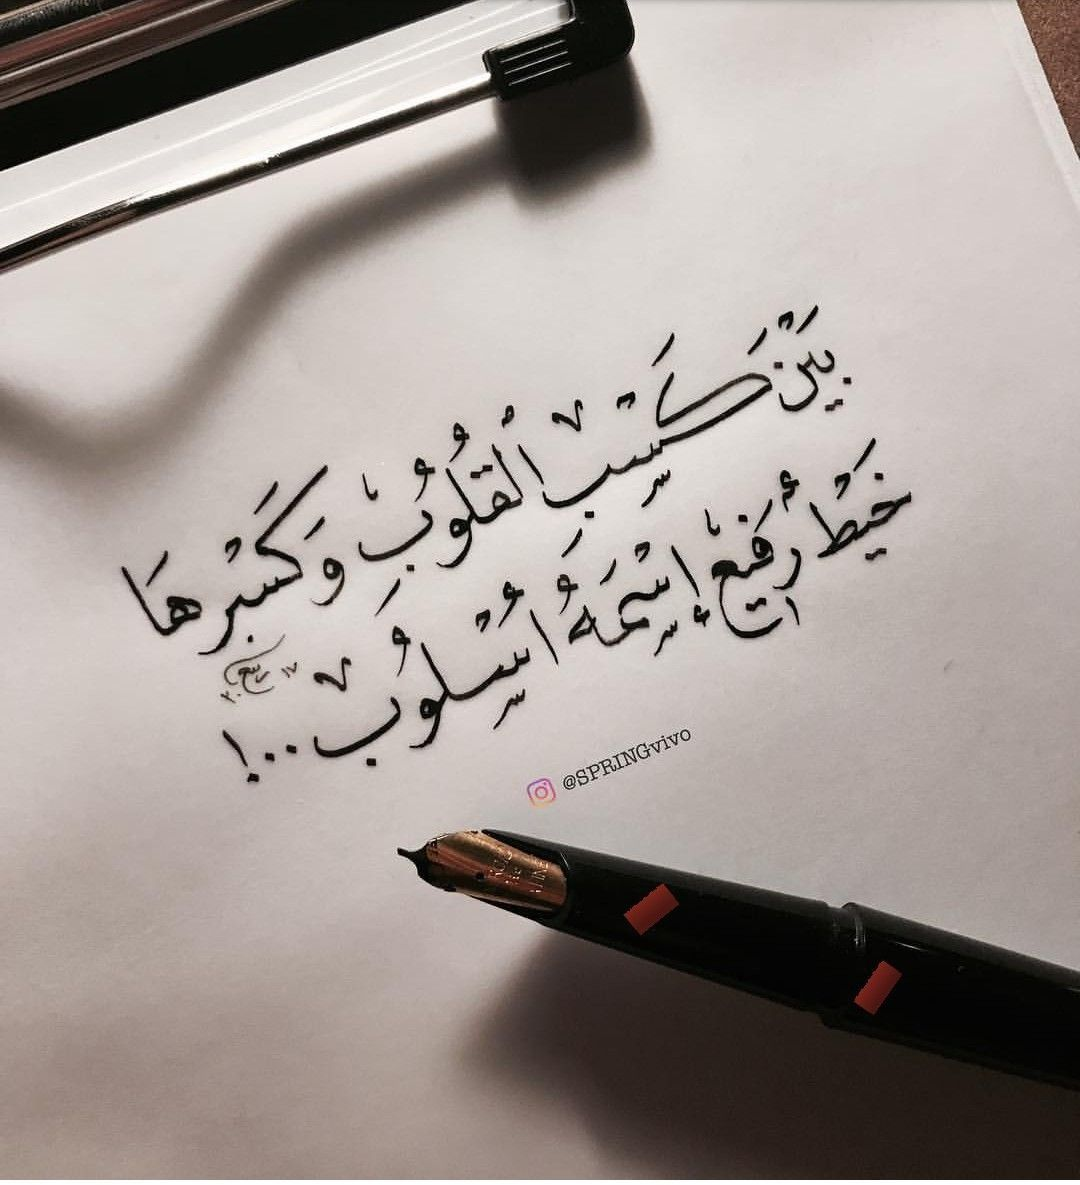 عشق و حب Calligraphy Quotes Love Words Quotes Postive Quotes